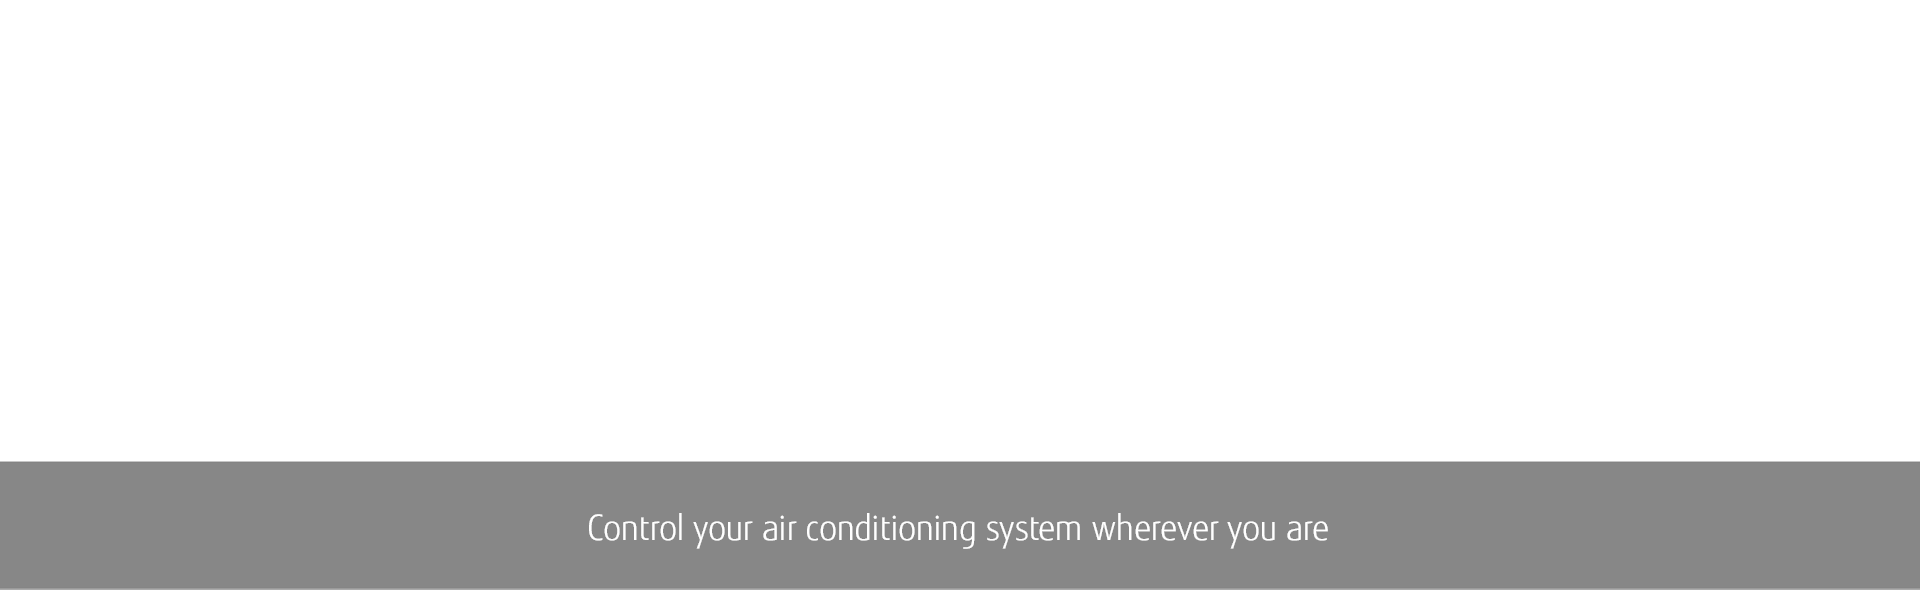 RESIDENTIAL Halcyon™ MINI-SPLIT TECHNOLOGY: Control your air conditioning system wherever you are.